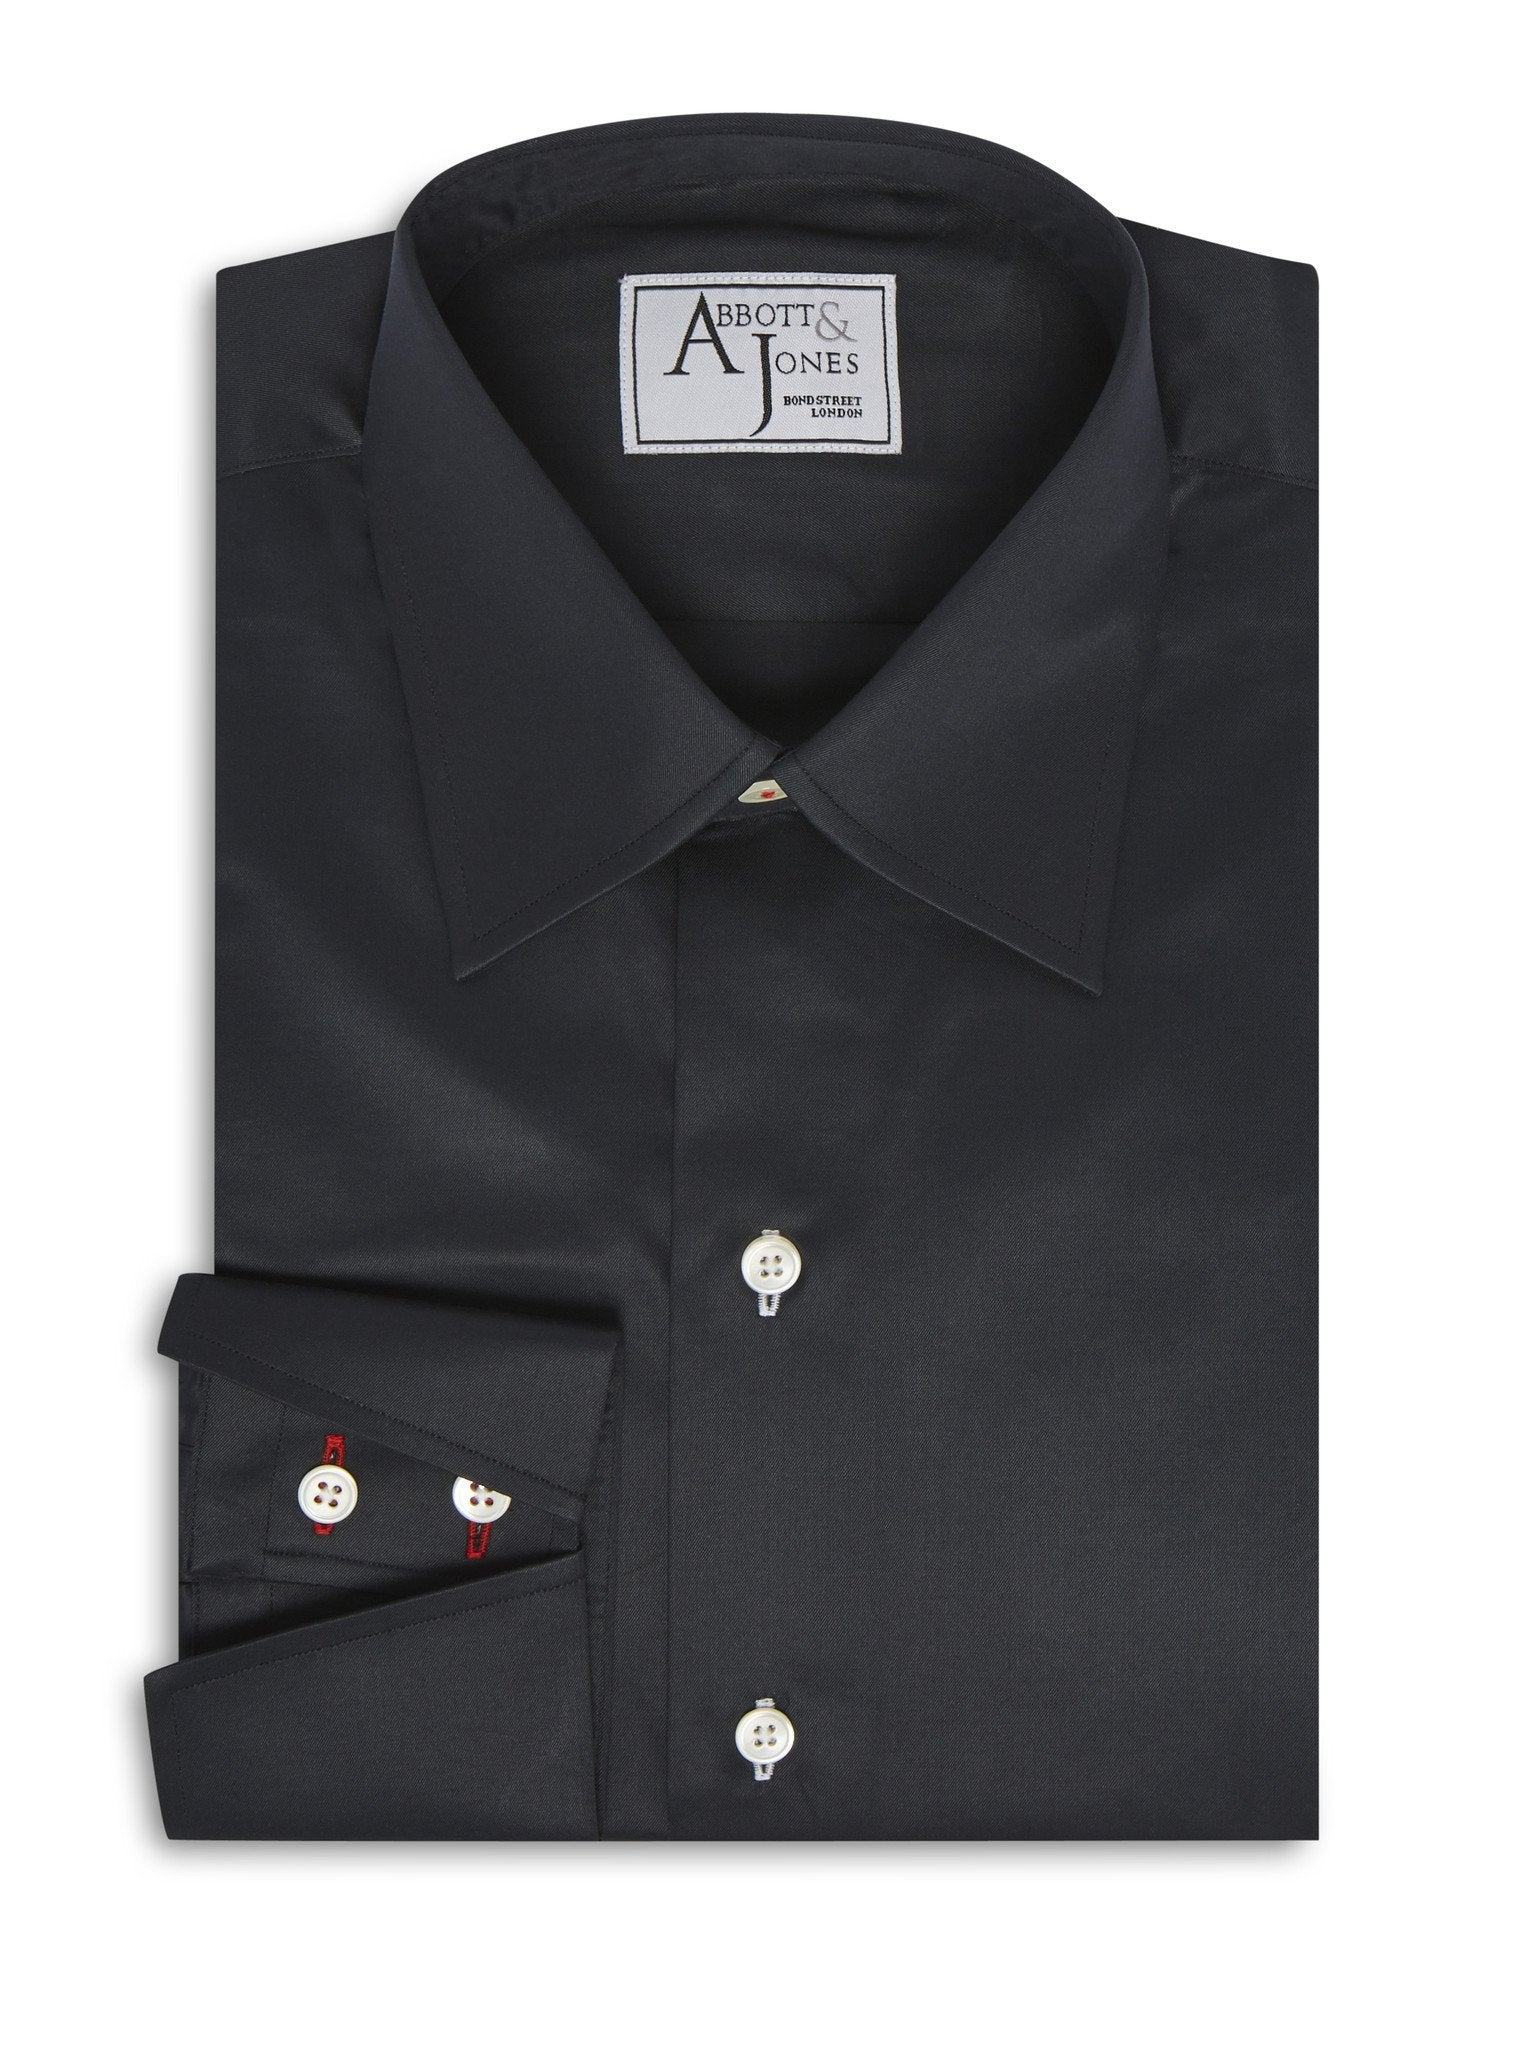 Bespoke - The Black Evening Shirt